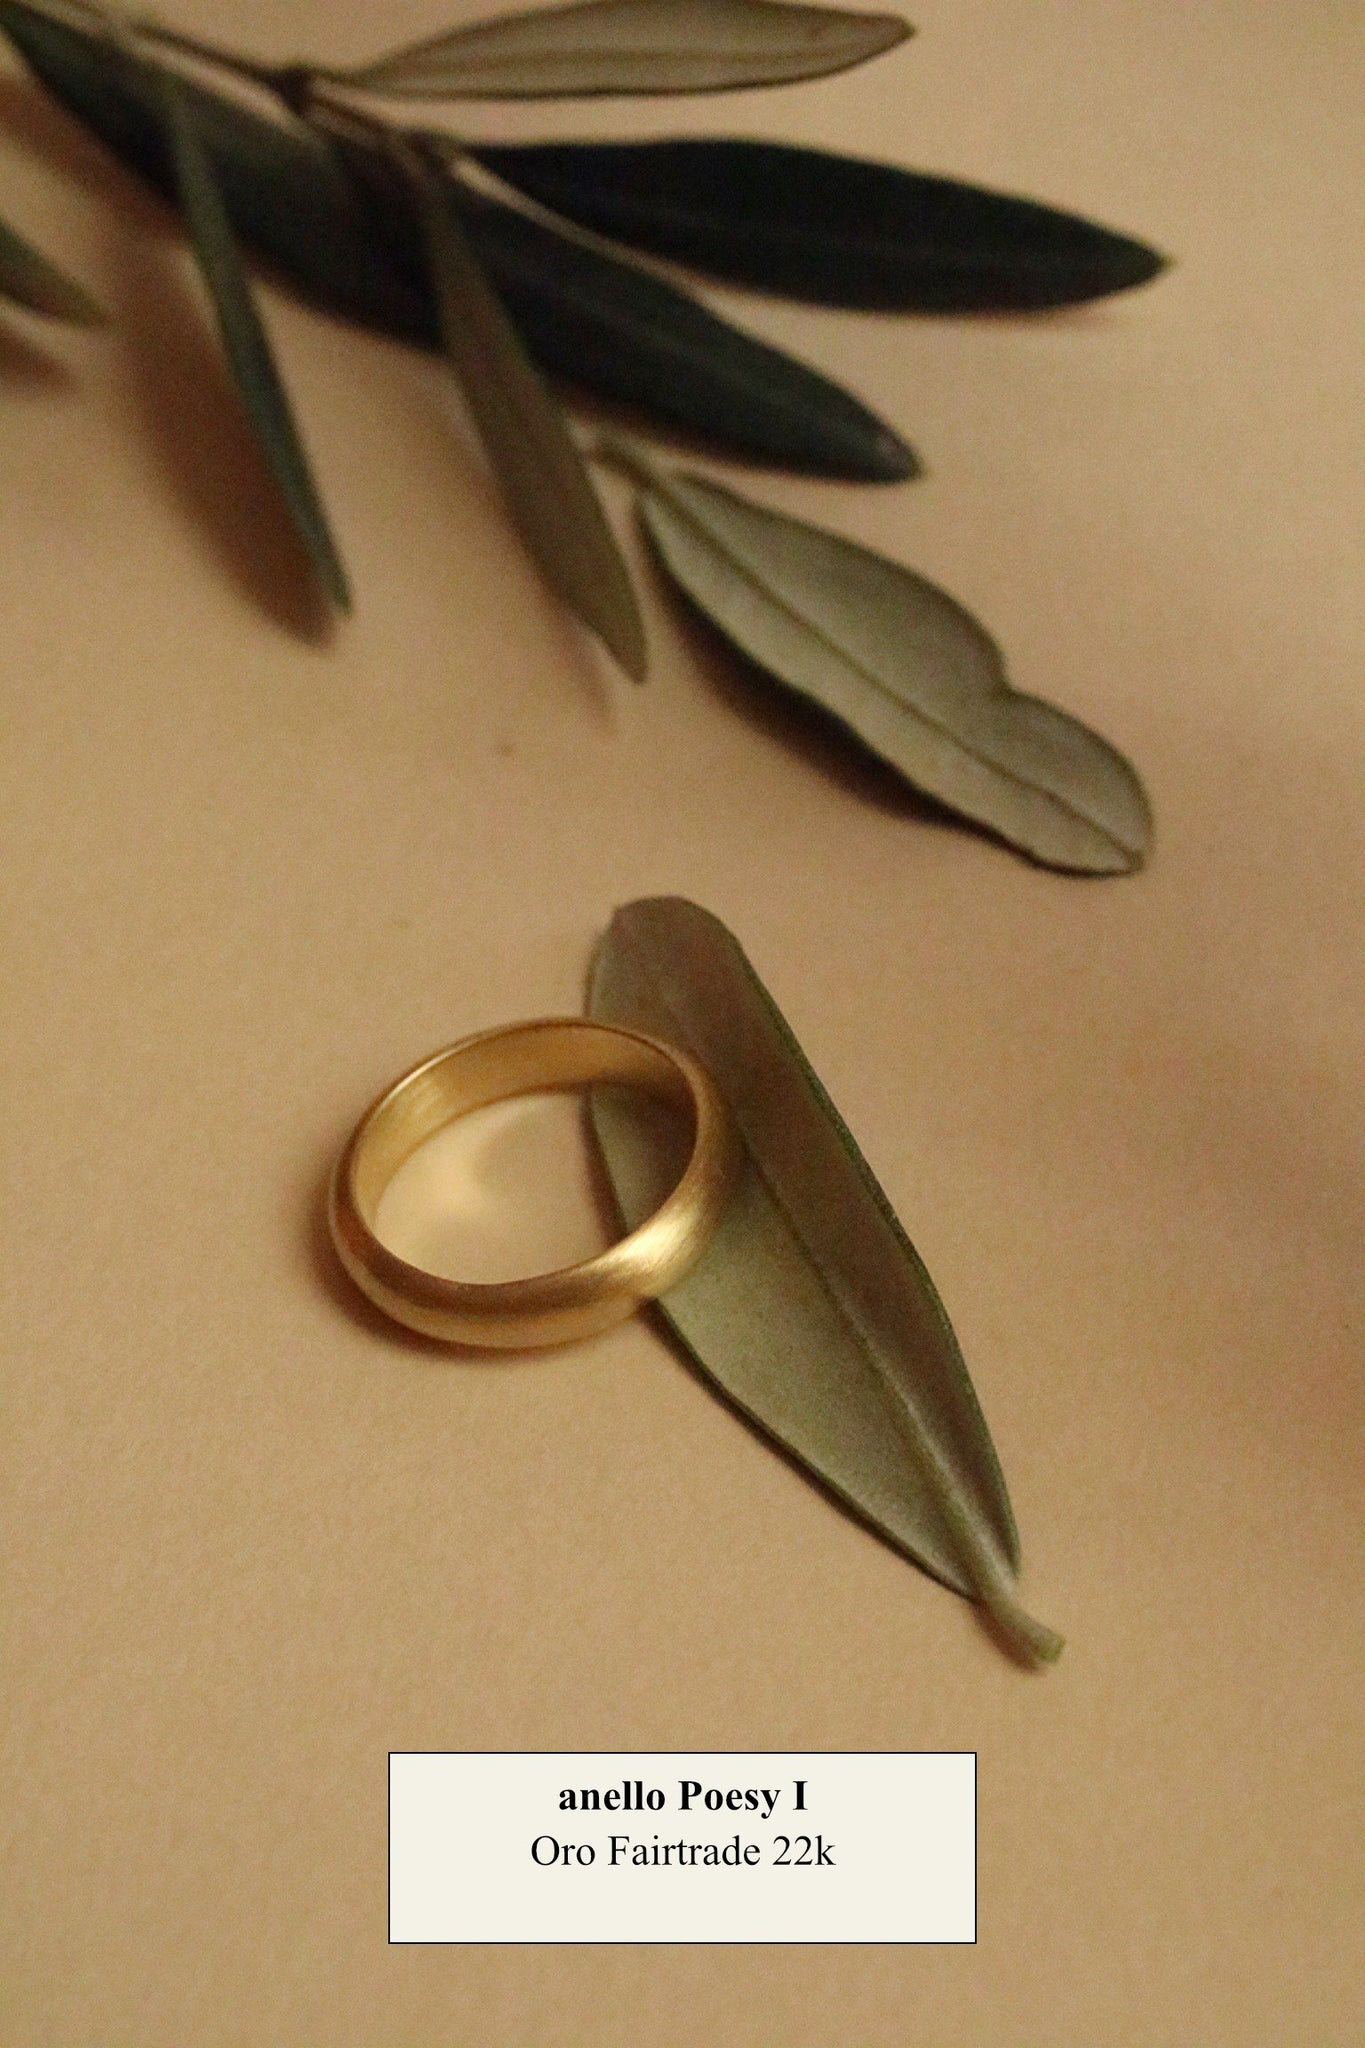 Anello Poesy I <br /> Oro Fairtrade 22k